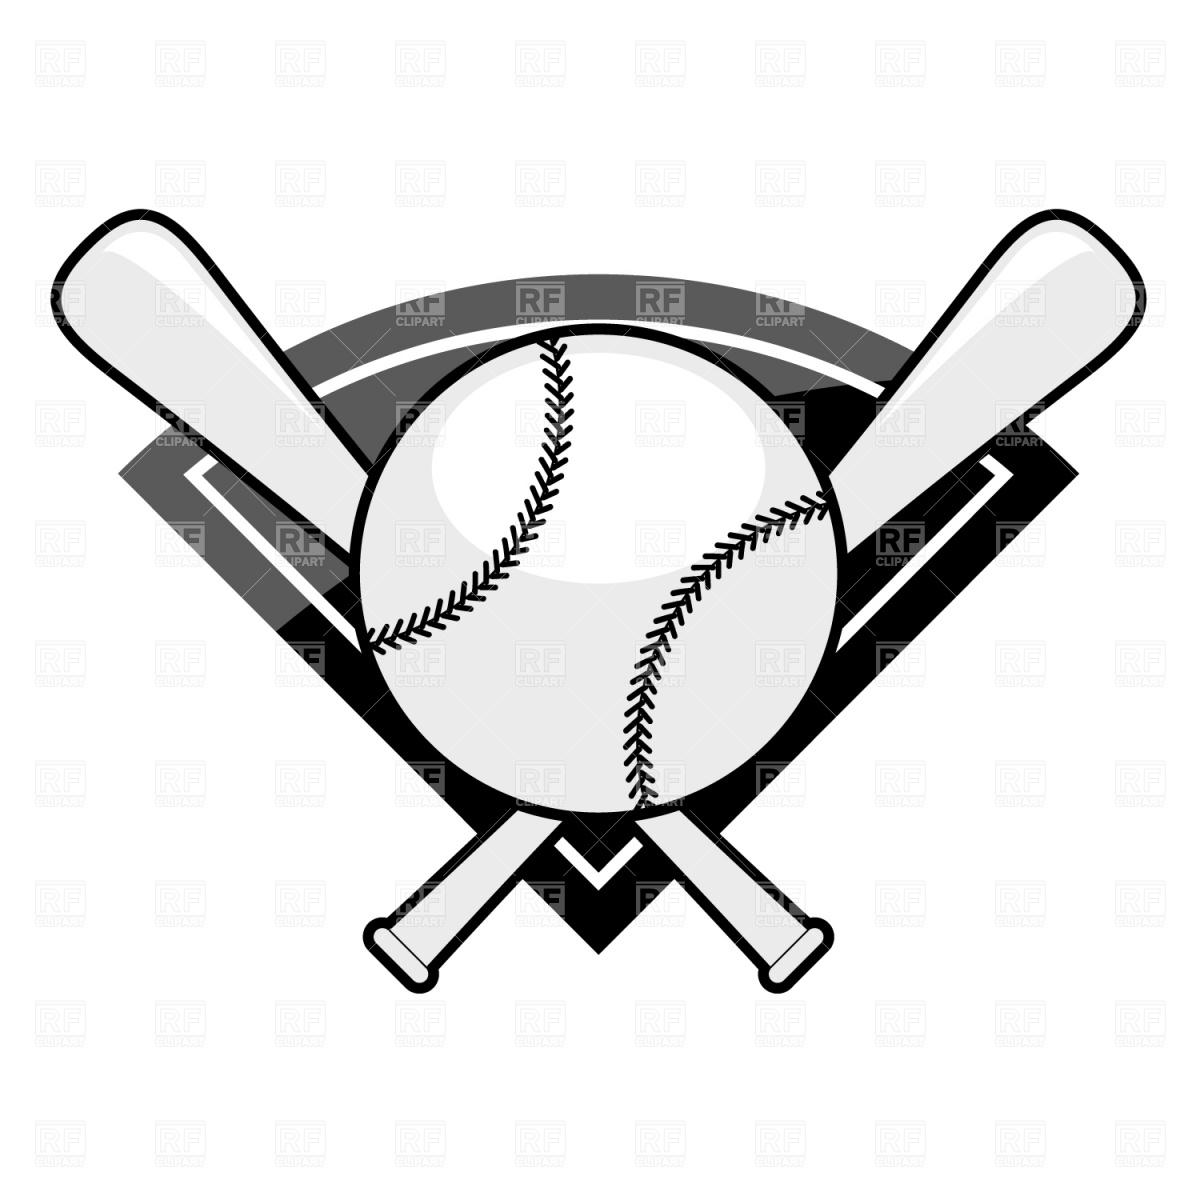 Bat  black and white crossed baseball bats clipart black and white 2